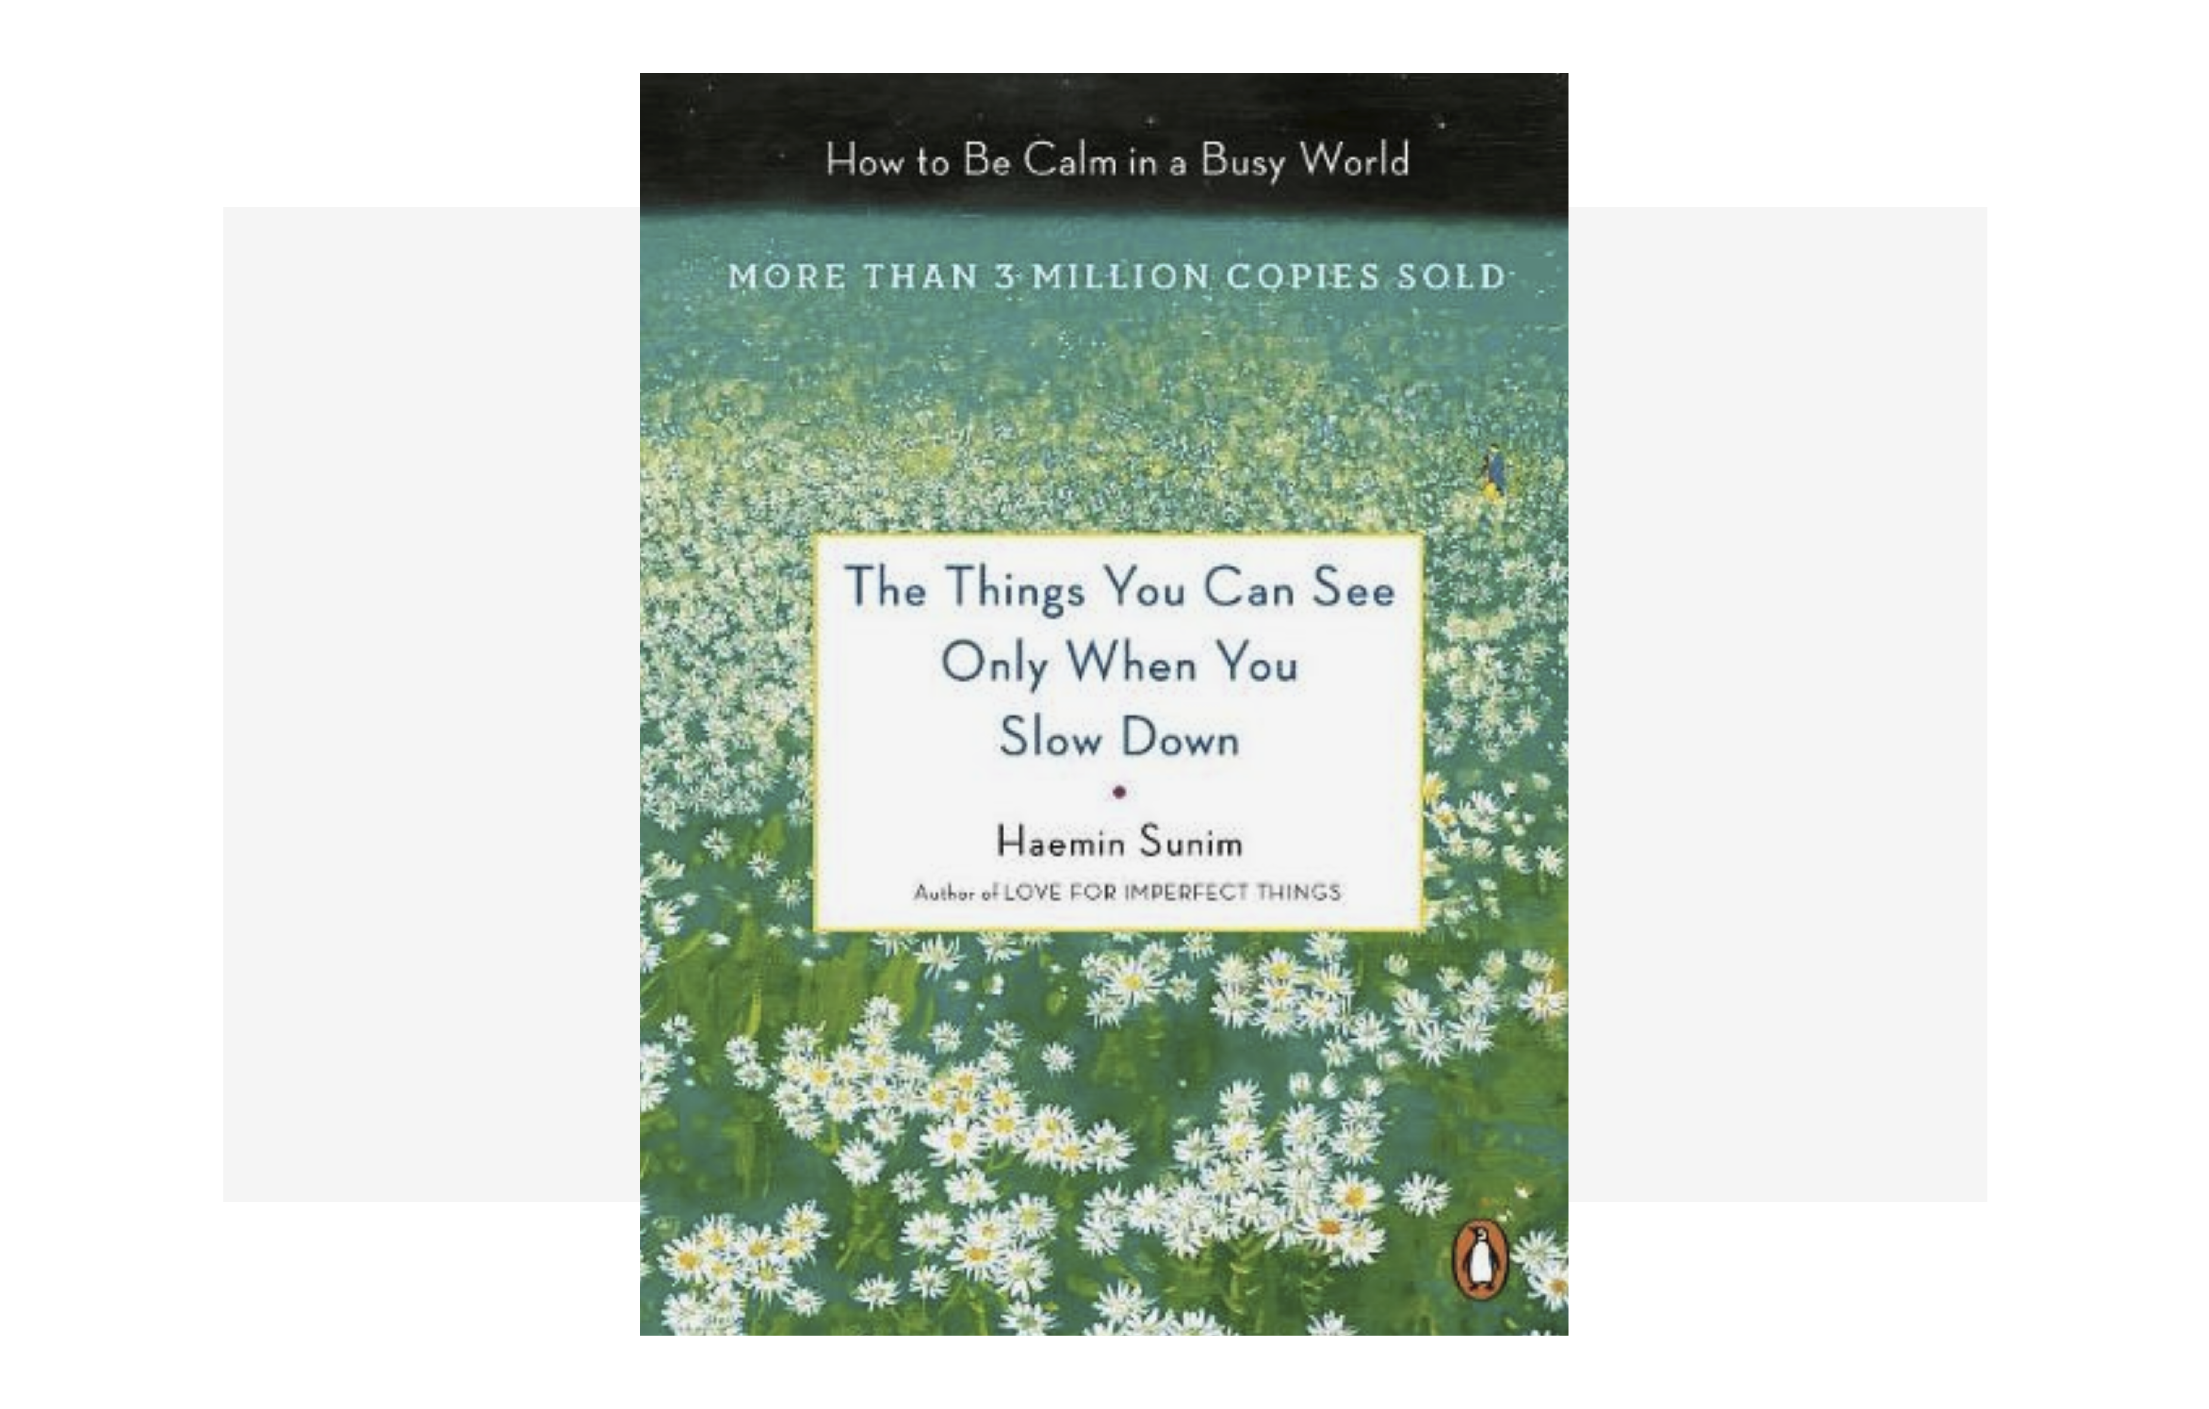 The Things You Can See by HAEMIN SUNIM